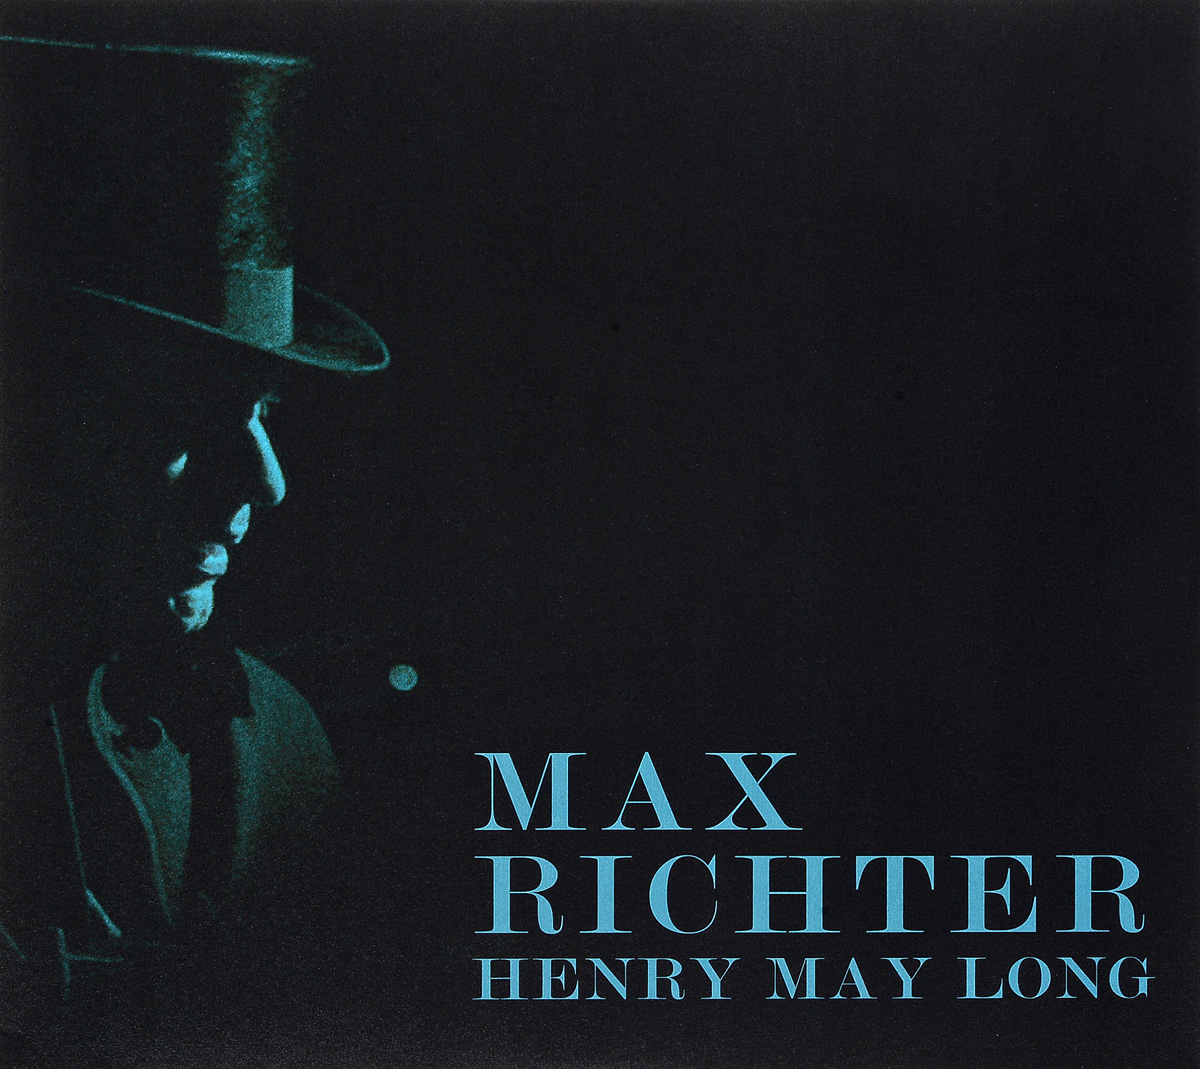 Макс Рихтер Max Richter. Henry May Long (LP) песни г вольфа д фишер дискау с рихтер lp